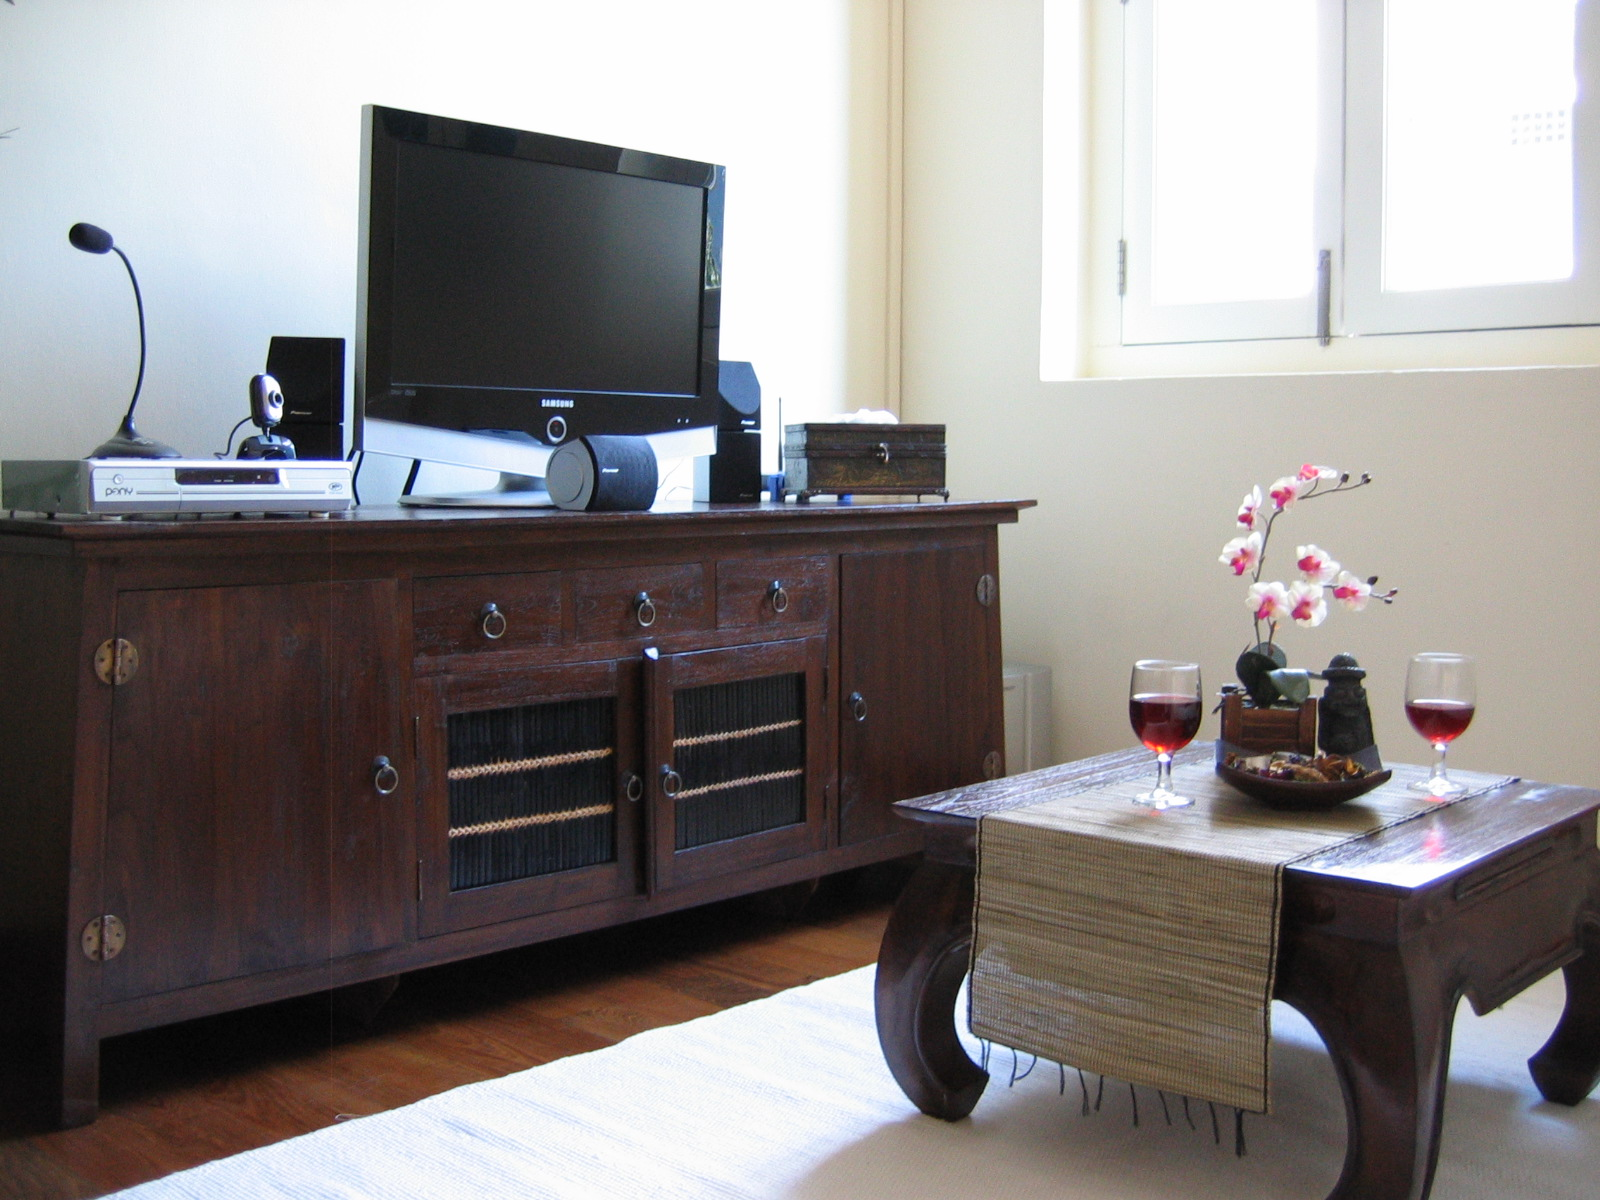 Citystate Serviced Apartment